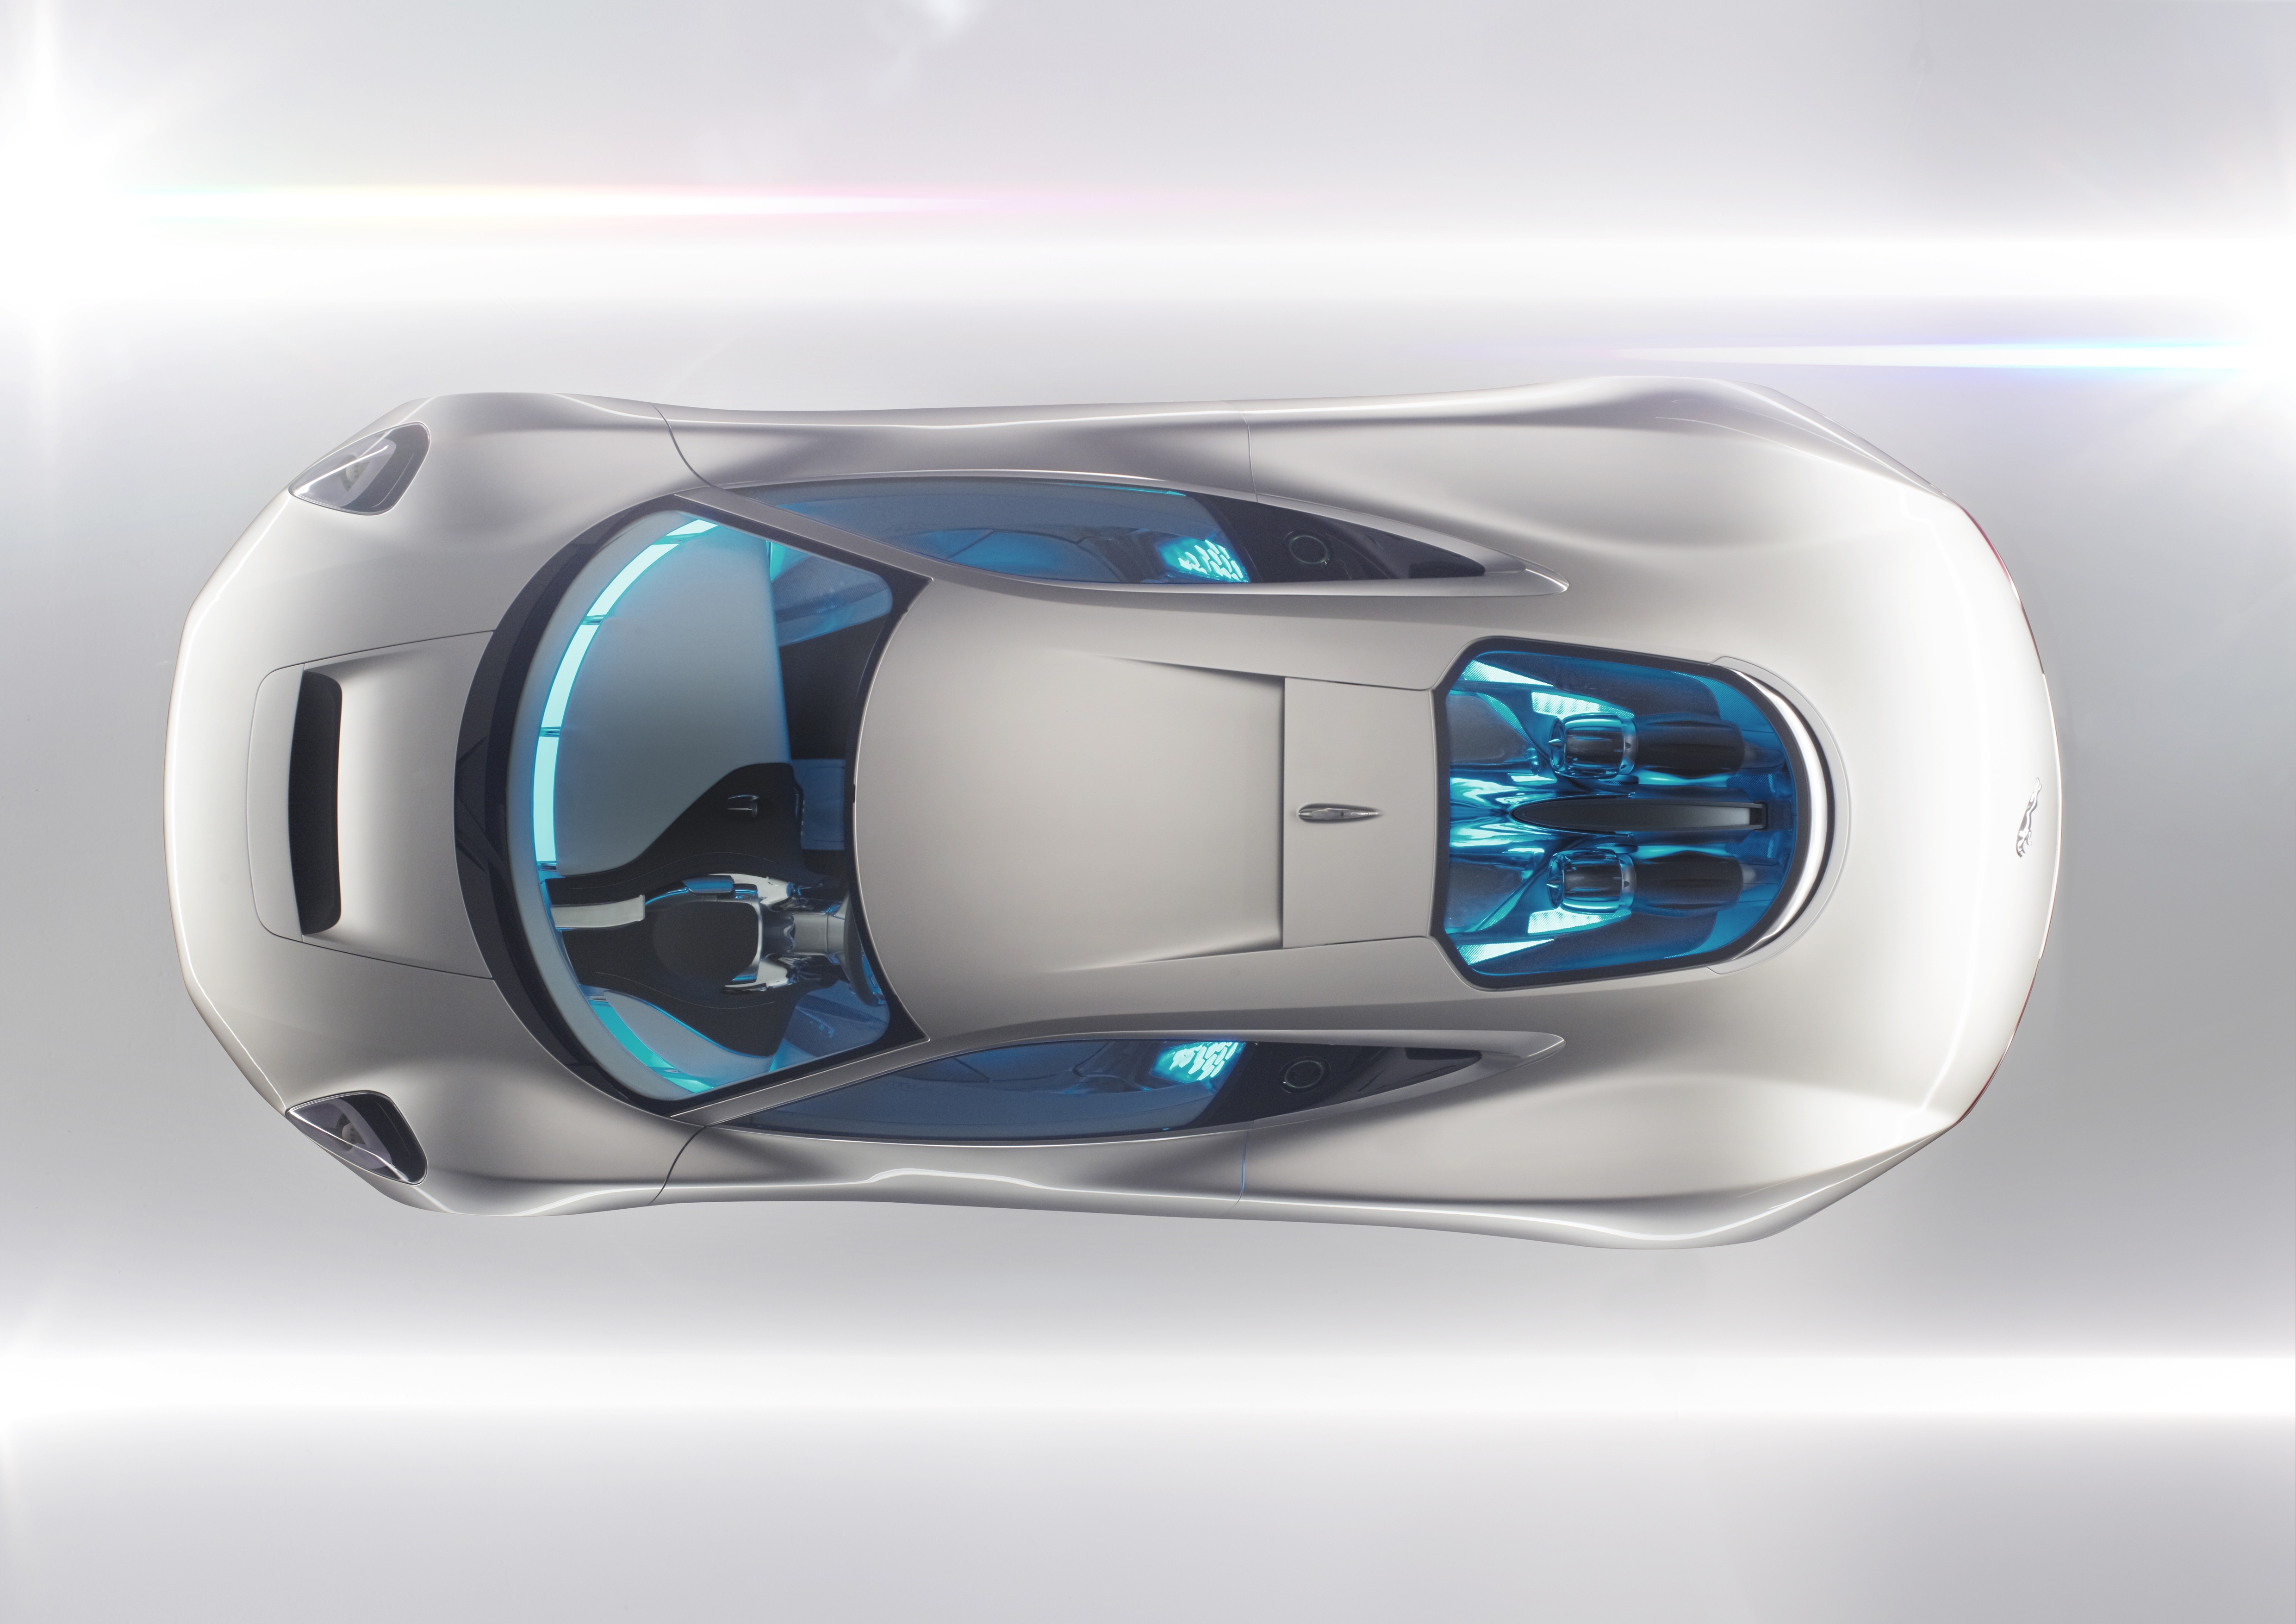 The C-X75 concept car features a gas-turbine developed by Bladon Jets